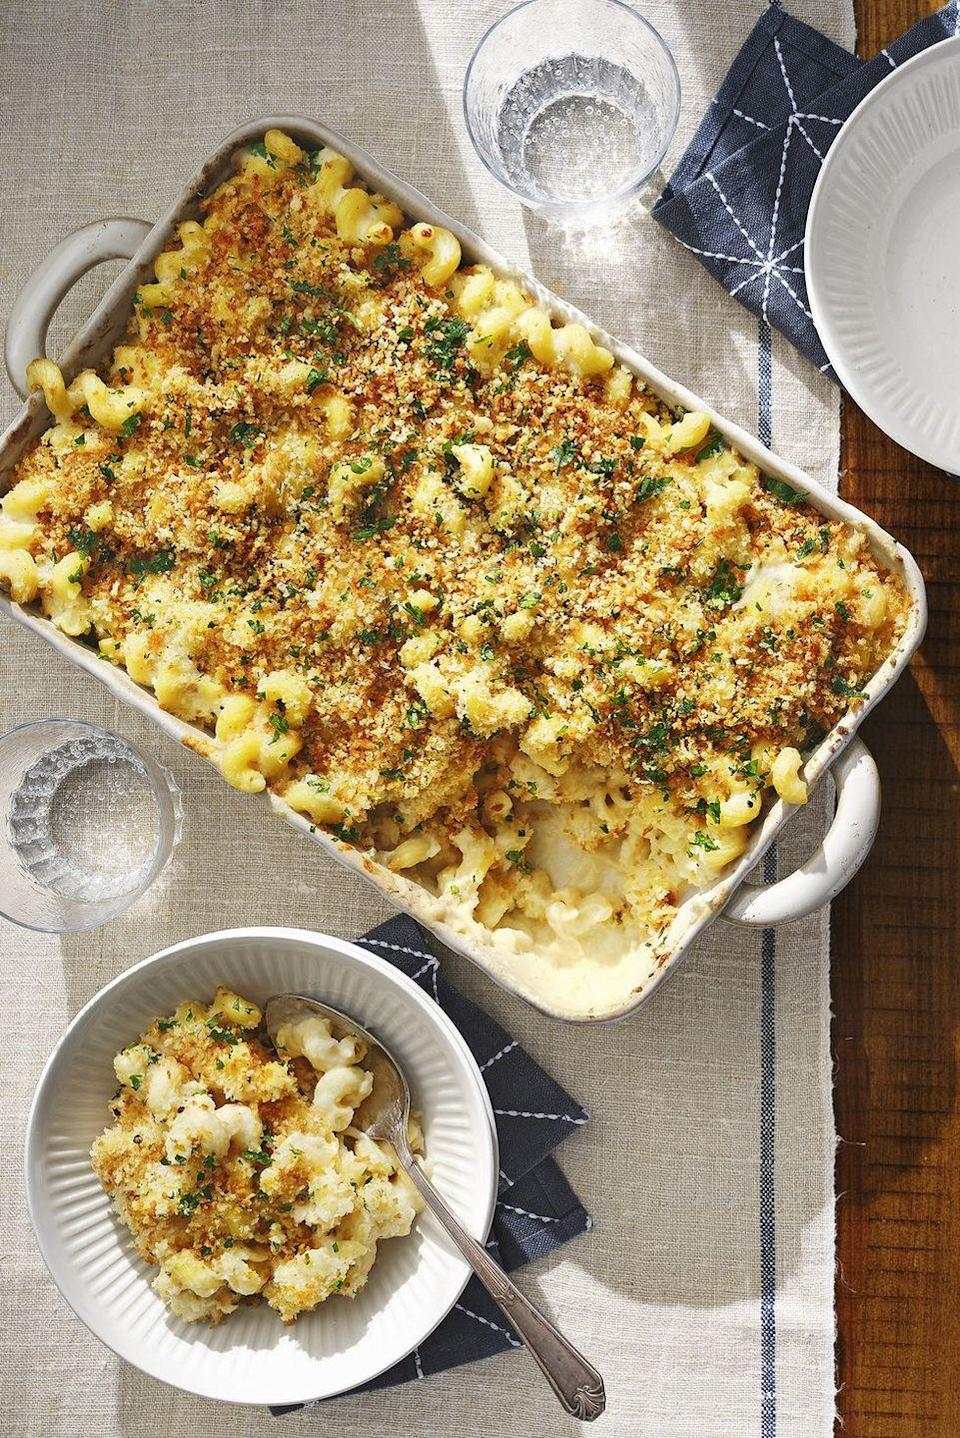 """<p>Need to sneak a vegetable into your family dinner? The cauliflower here does double-duty. Not only does it add some much-needed veg, but it actually gives the dish a richer, creamier flavor!</p><p><strong><a href=""""https://www.countryliving.com/food-drinks/a30418292/cauliflower-mac-and-cheese-recipe/"""" rel=""""nofollow noopener"""" target=""""_blank"""" data-ylk=""""slk:Get the recipe"""" class=""""link rapid-noclick-resp"""">Get the recipe</a>.</strong></p><p><a class=""""link rapid-noclick-resp"""" href=""""https://www.amazon.com/OXO-Grips-Freezer-Oven-Baking/dp/B019FHD0FK/?tag=syn-yahoo-20&ascsubtag=%5Bartid%7C10050.g.4772%5Bsrc%7Cyahoo-us"""" rel=""""nofollow noopener"""" target=""""_blank"""" data-ylk=""""slk:SHOP BAKING DISHES"""">SHOP BAKING DISHES</a></p>"""